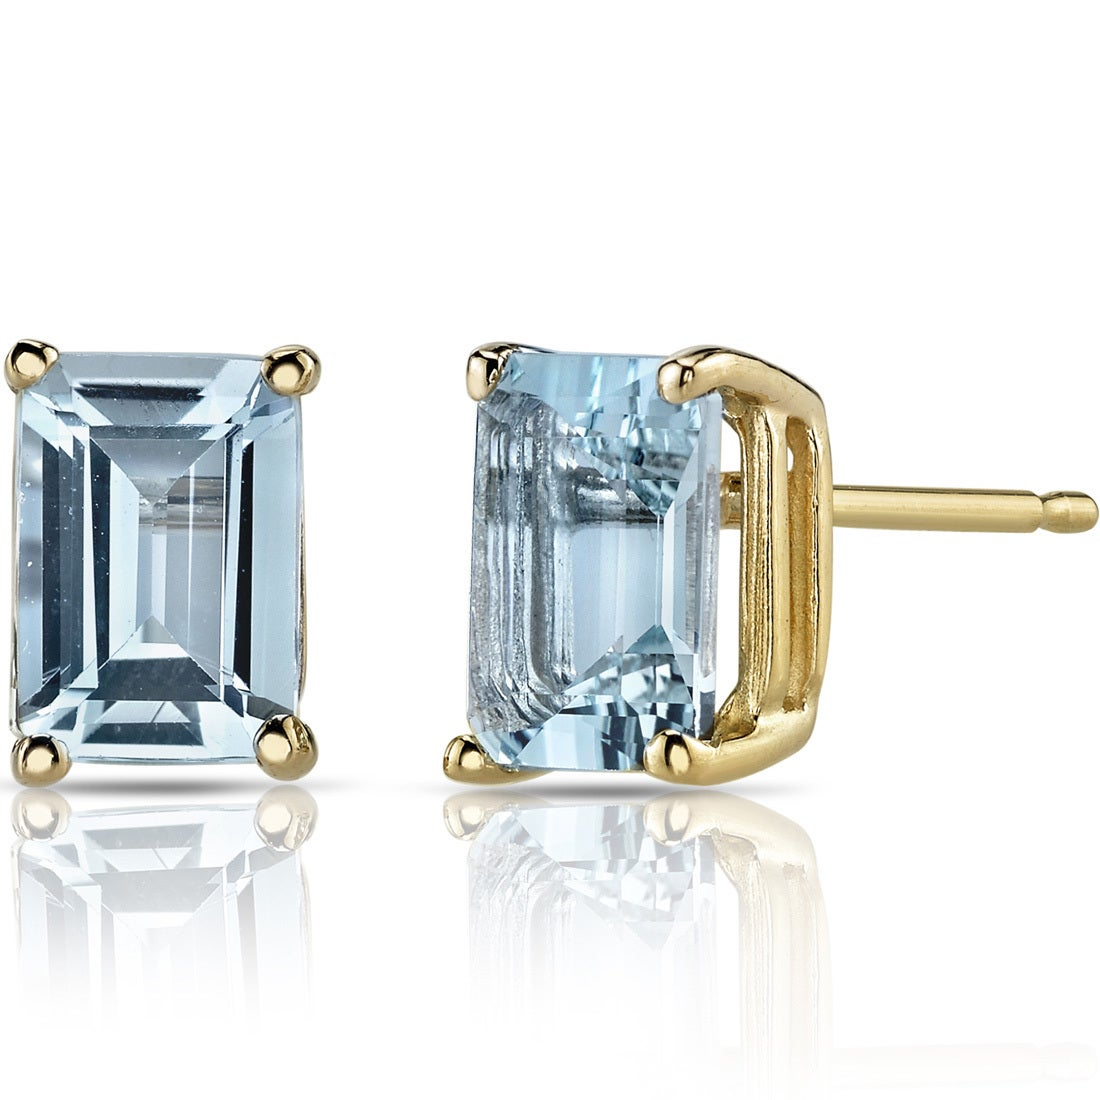 Details about  /1 Emerald Cut Solitaire Classic Stud Natural Aquamarine Earrings 14k Yellow Gold